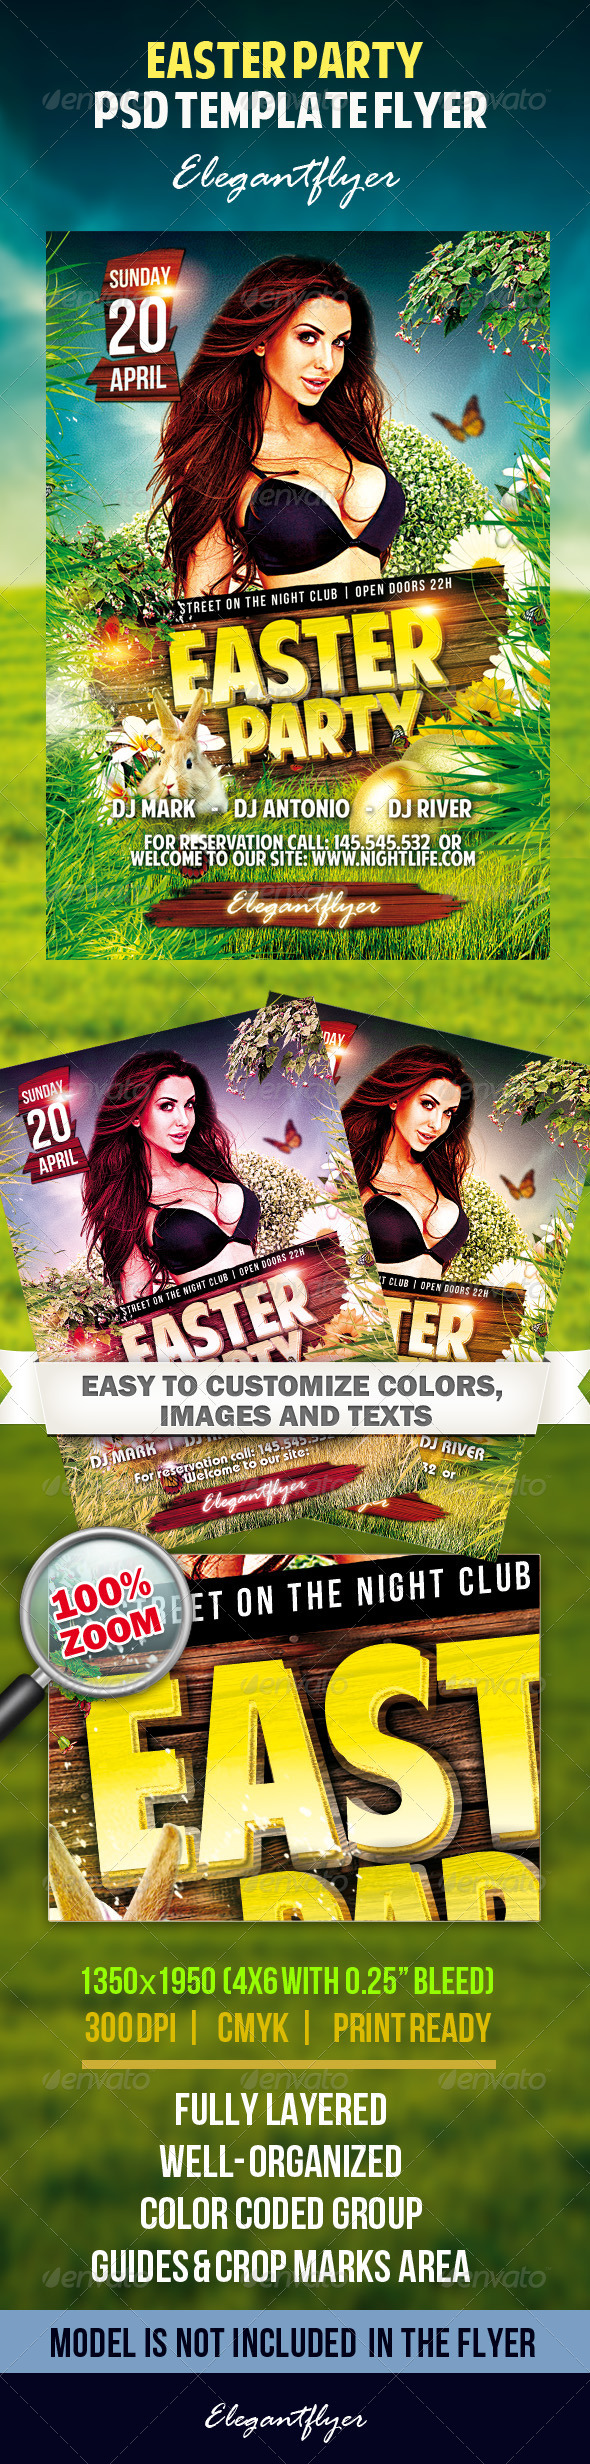 Easter Party Flyer PSD Tempate